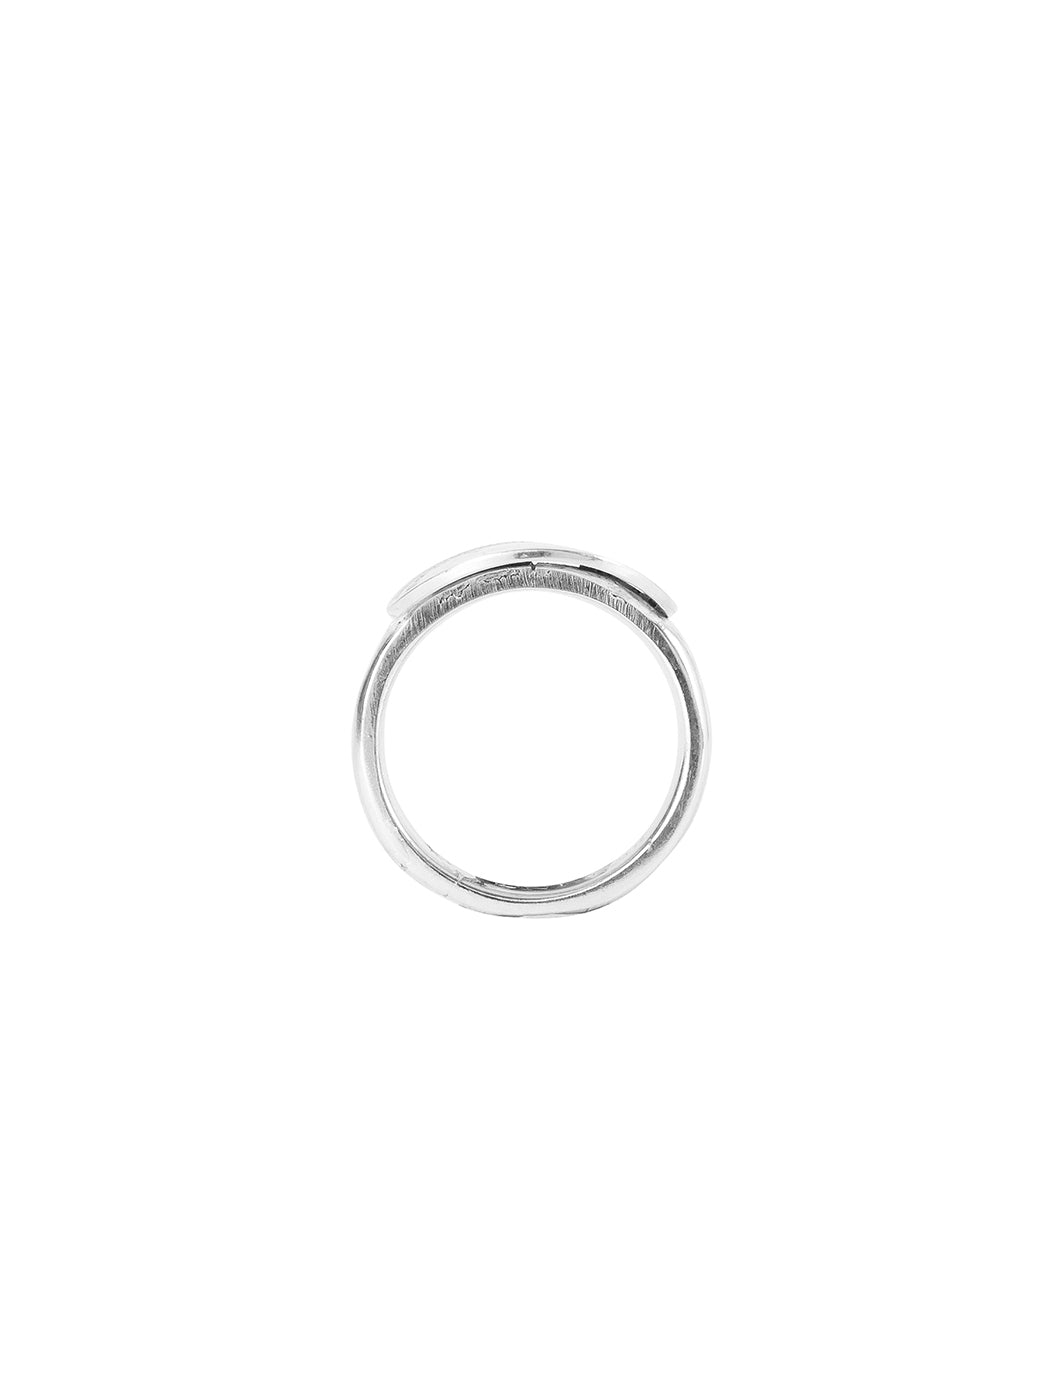 Fiorina Jewellery 3p Bent Coin Ring Finger View